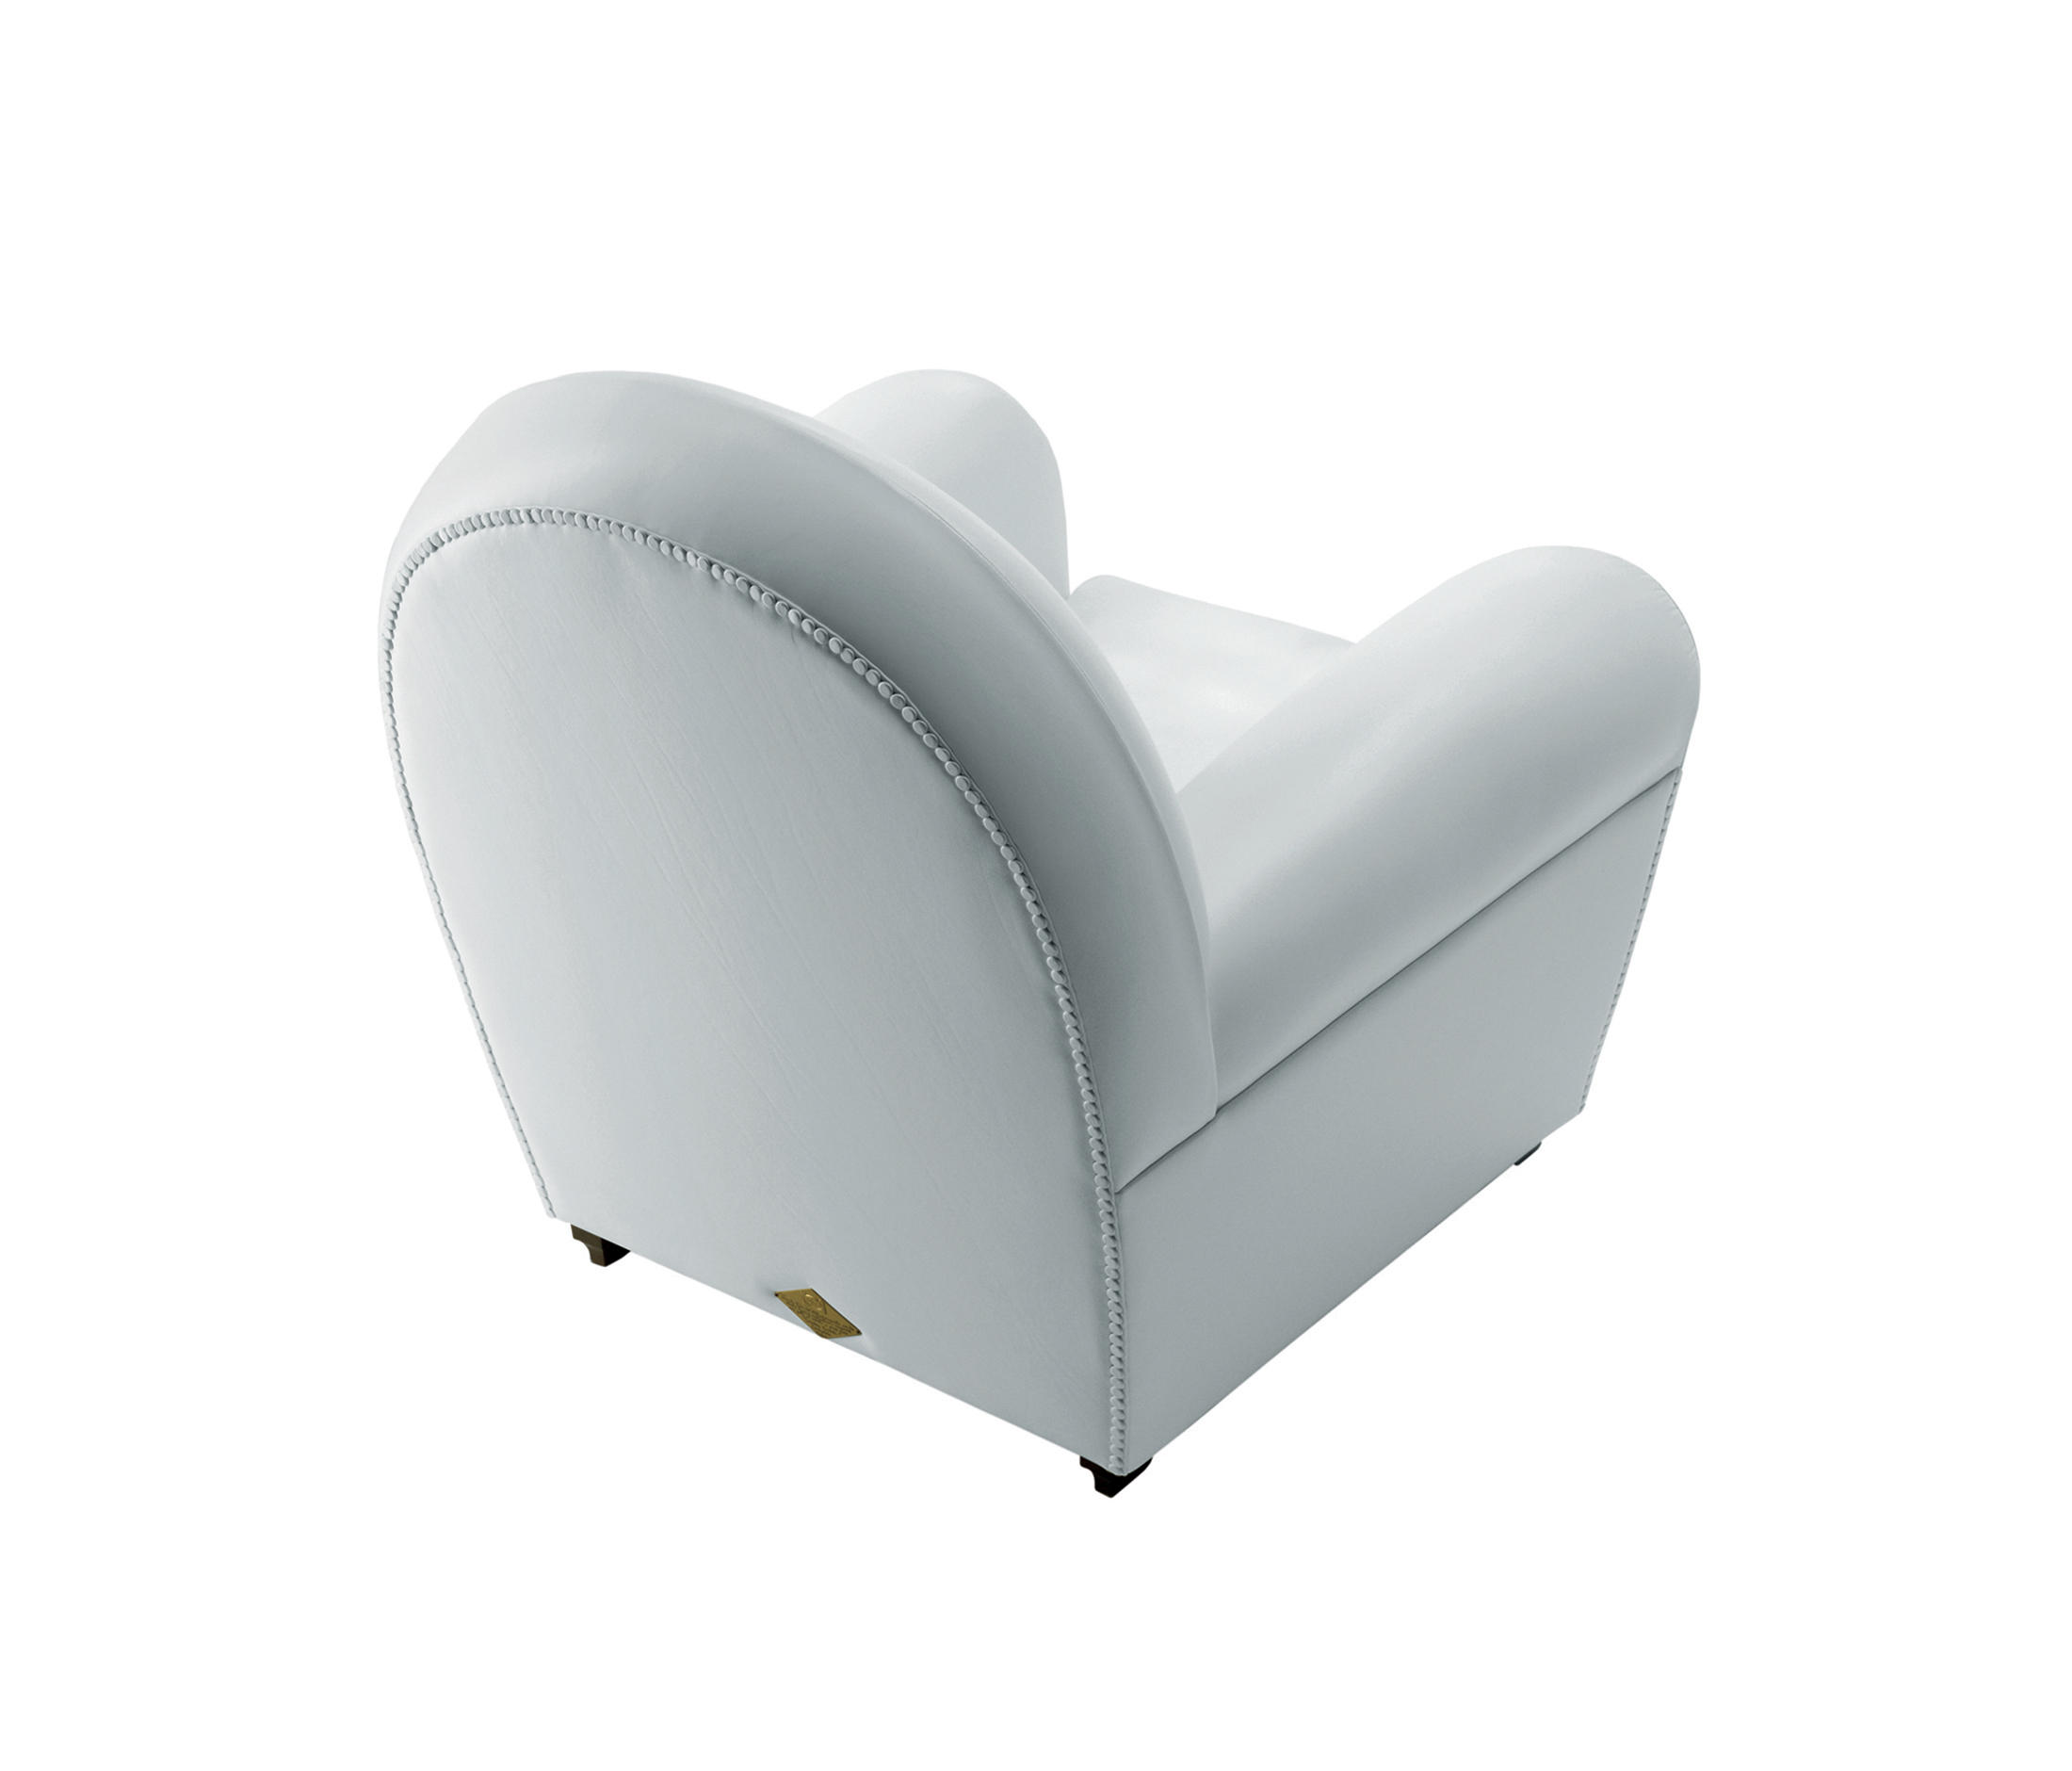 VANITY FAIR - Armchairs from Poltrona Frau | Architonic